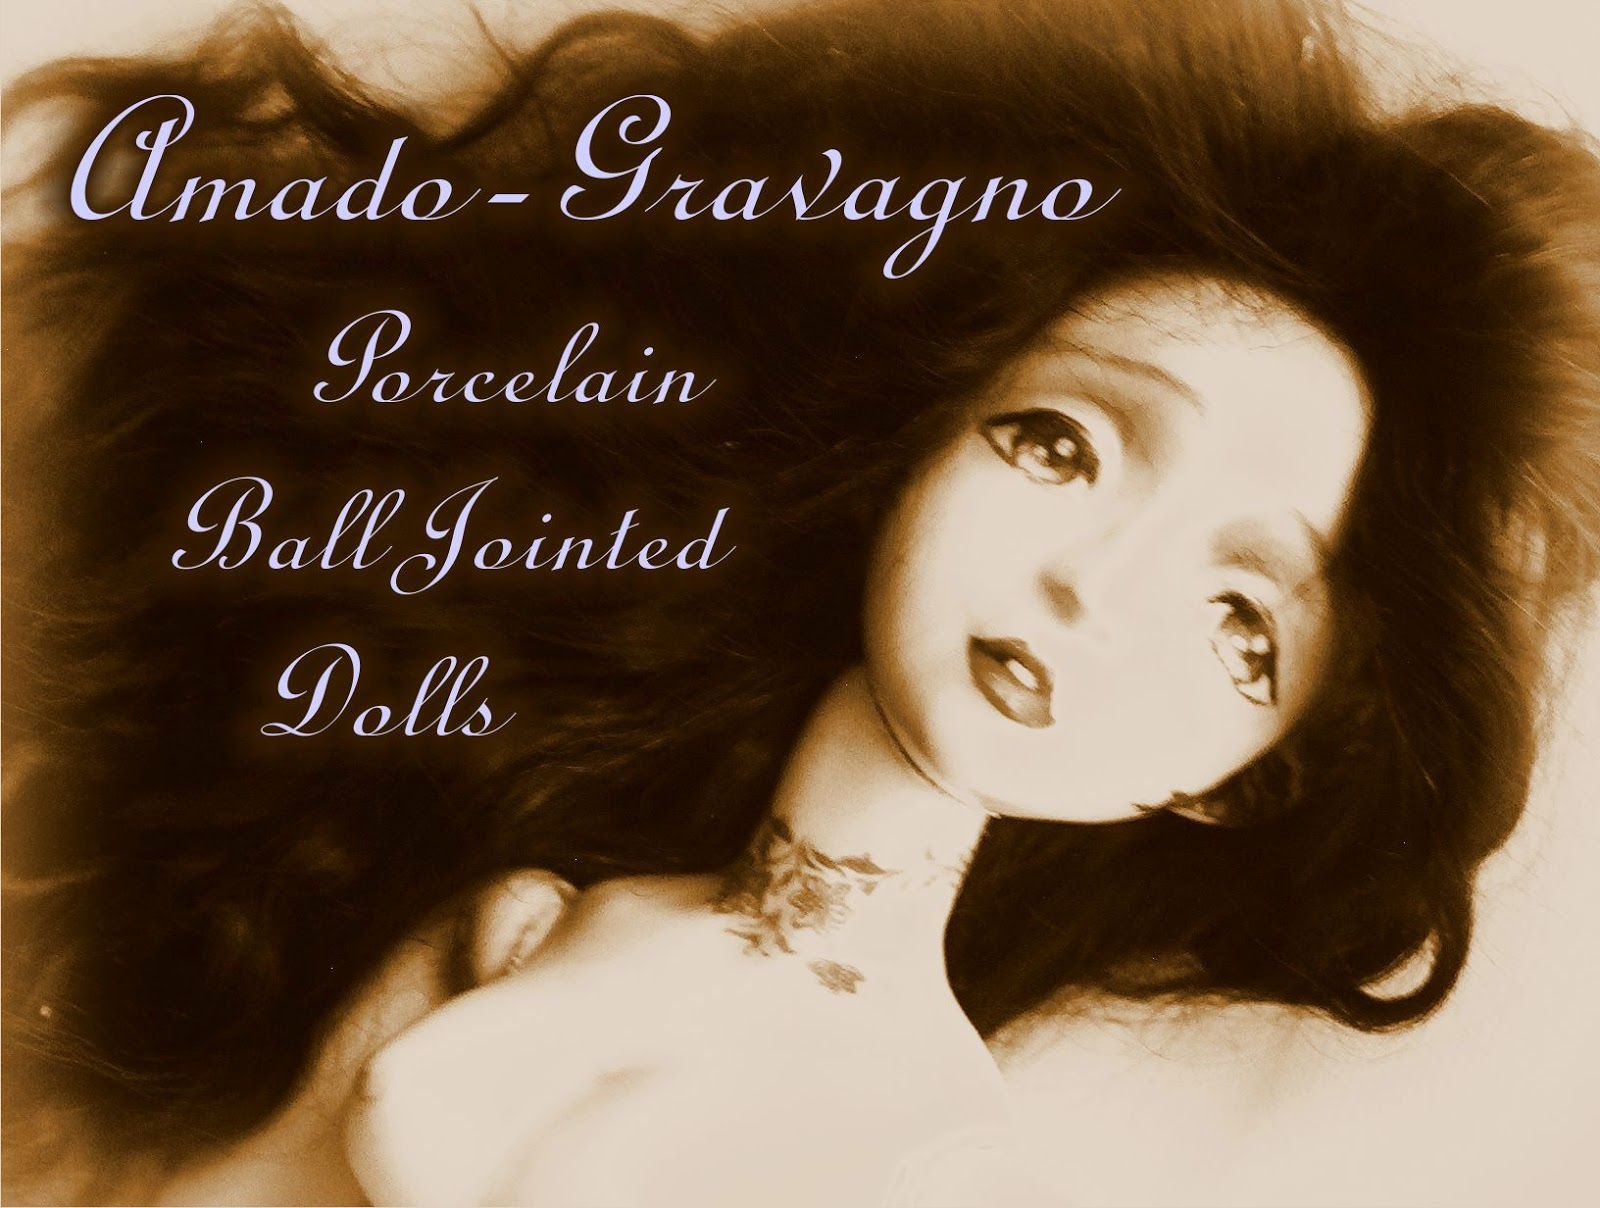 amadogravagno porcelain ball jointed dolls